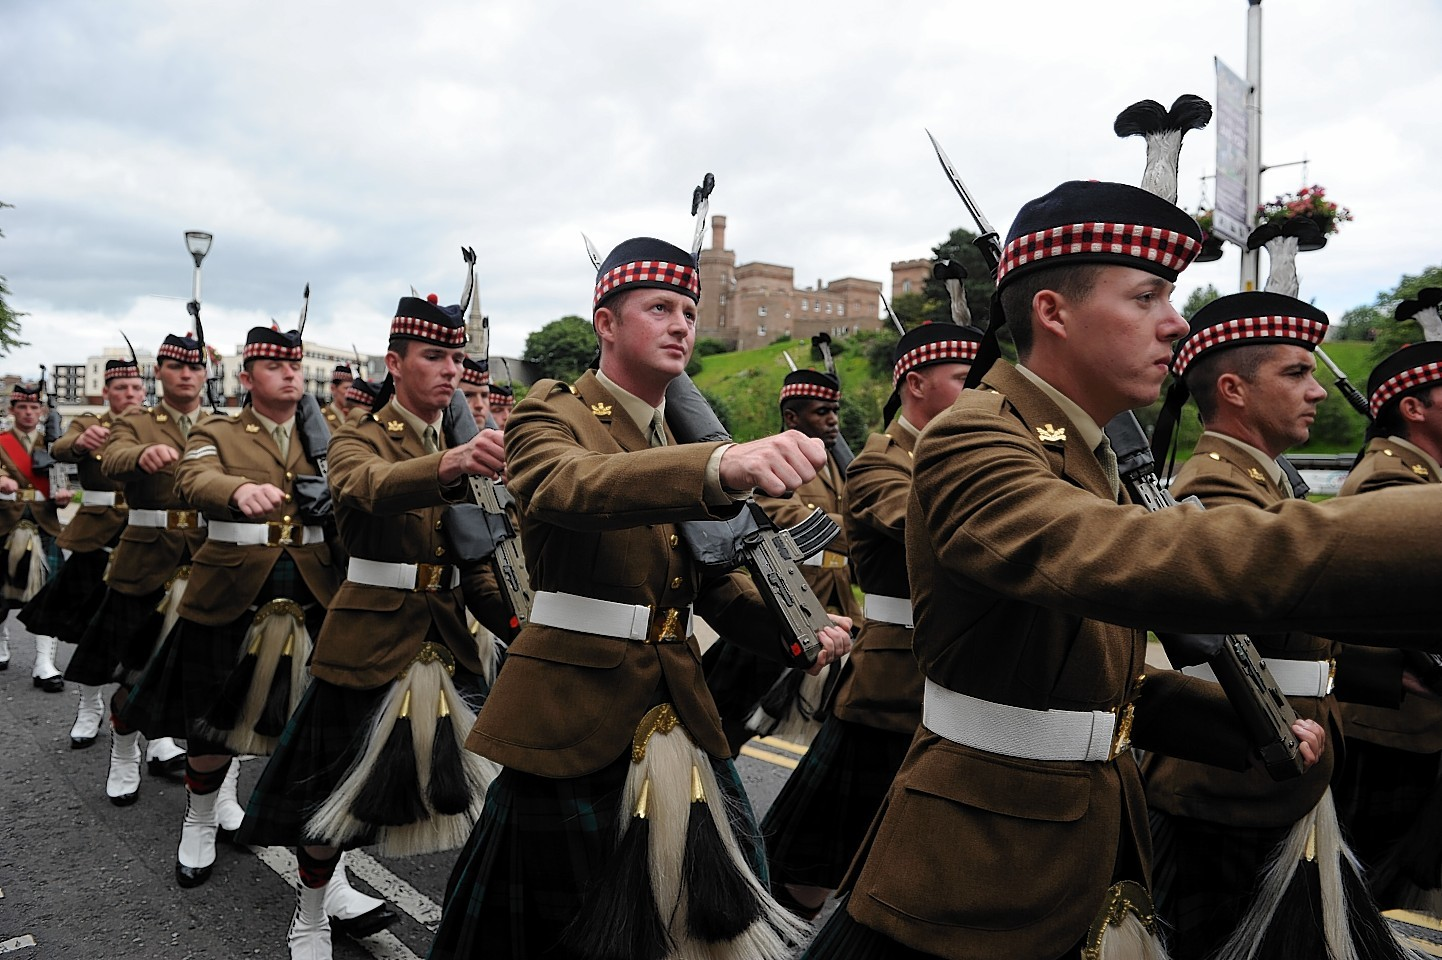 The Highlanders as they marched through Inverness in June 2014